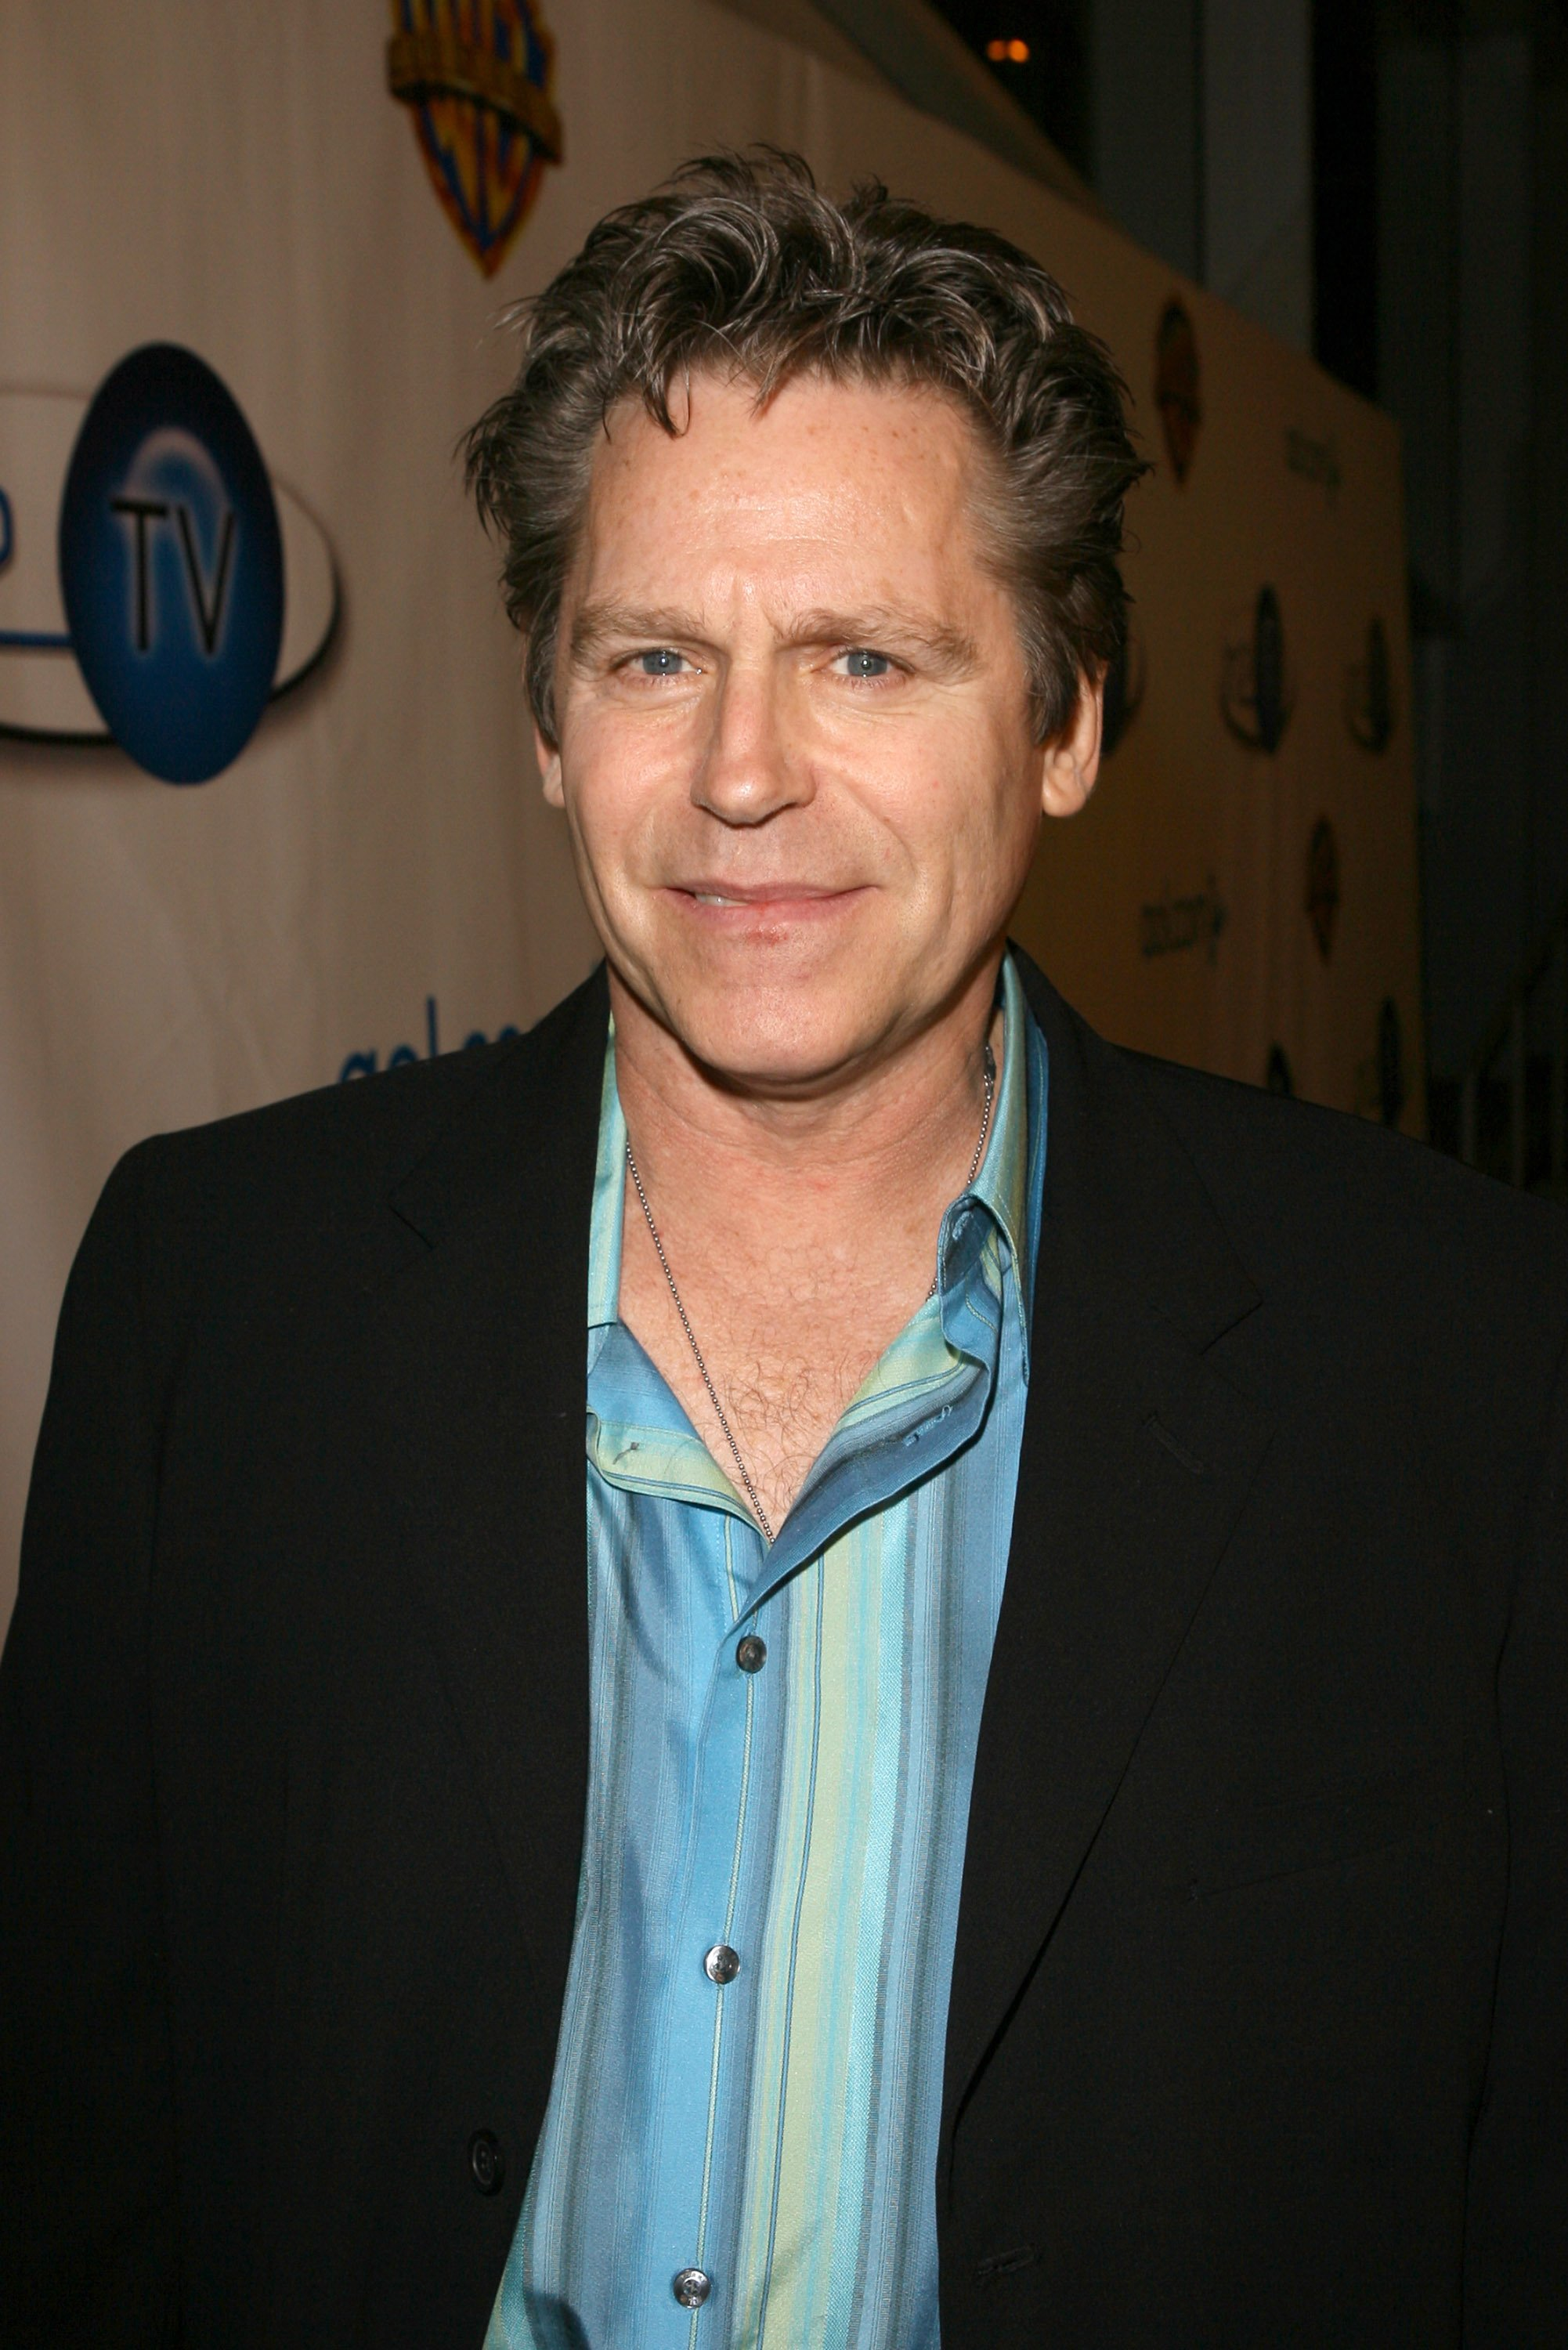 An undated image of Jeff Conaway at the Museum of Television and Radio in Los Angeles, California | Photo: Getty Images